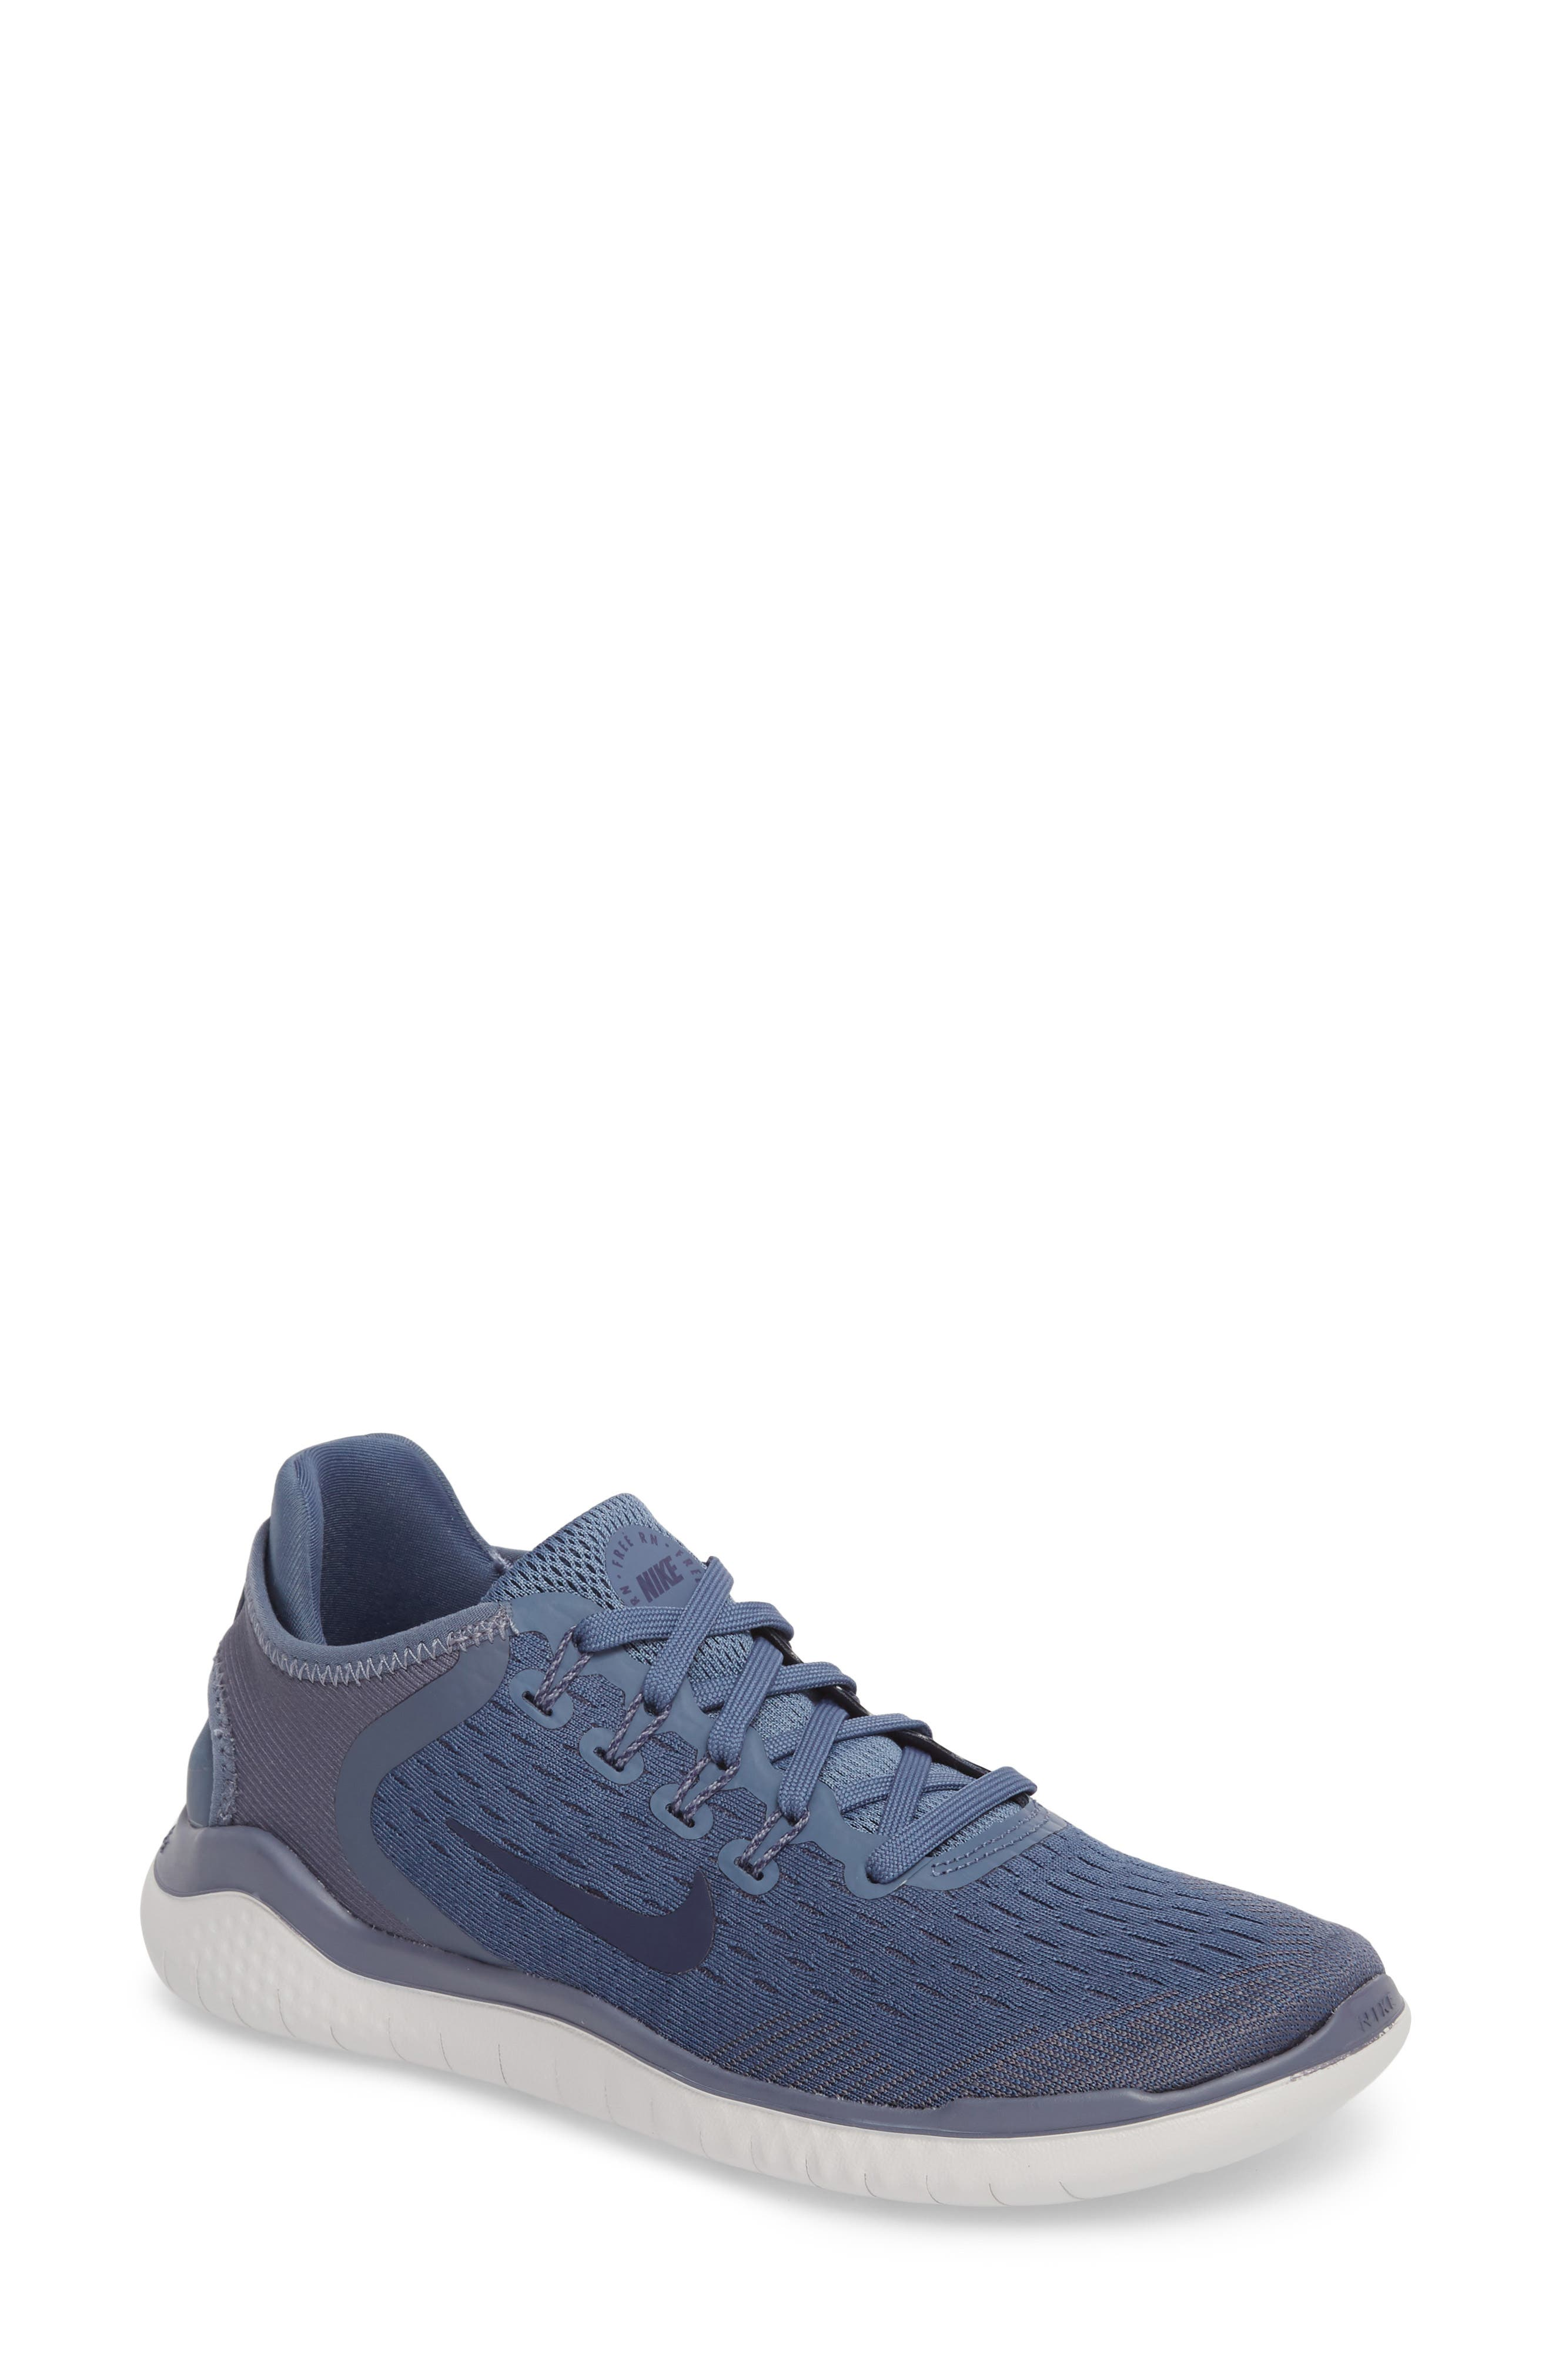 Free RN 2018 Running Shoe,                         Main,                         color, DIFFUSED BLUE/ NEUTRAL INDIGO